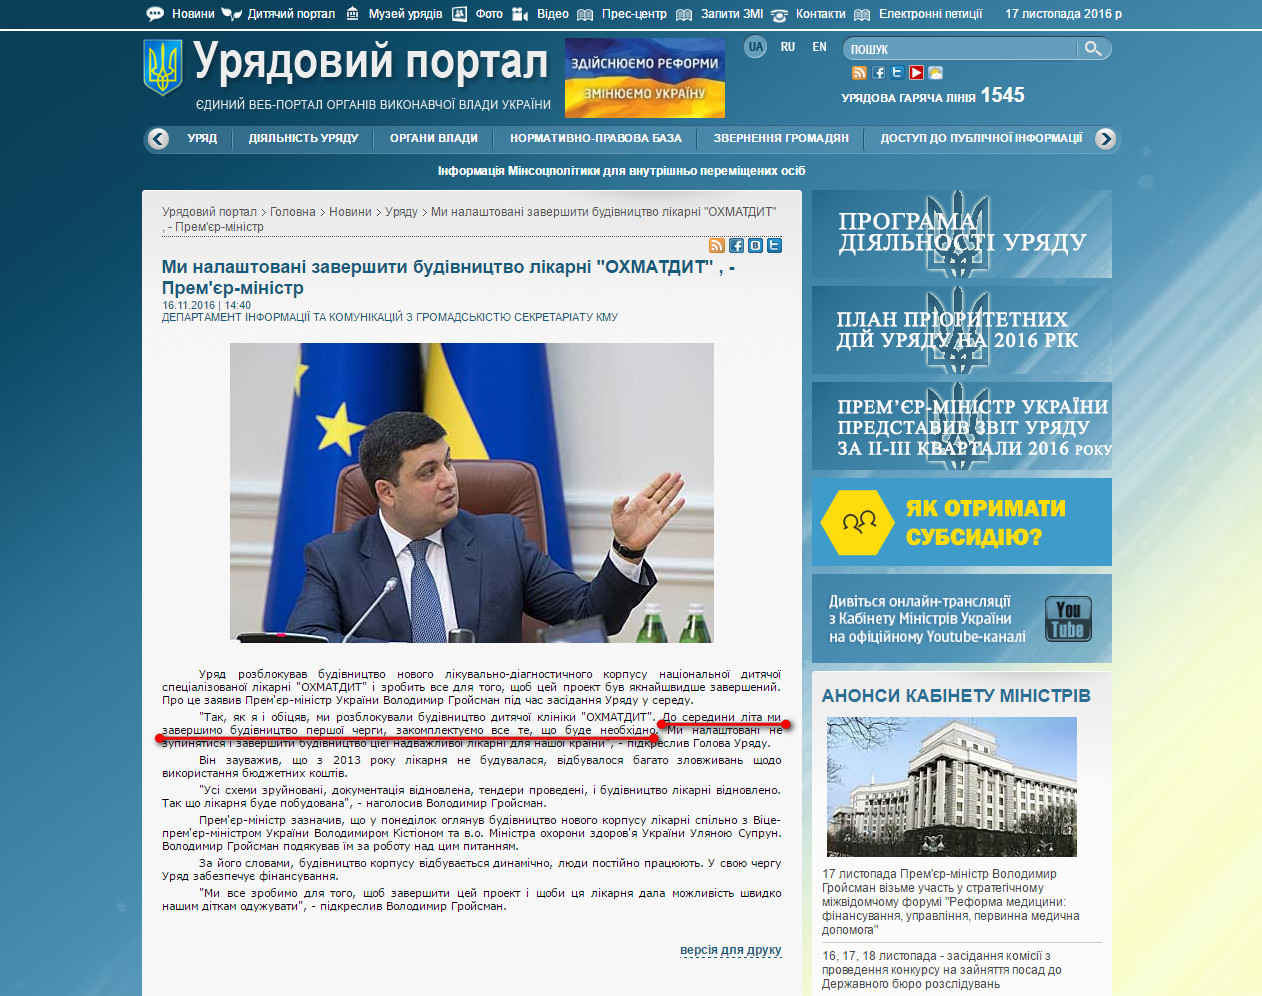 http://www.kmu.gov.ua/control/uk/publish/article?art_id=249493562&cat_id=244276429